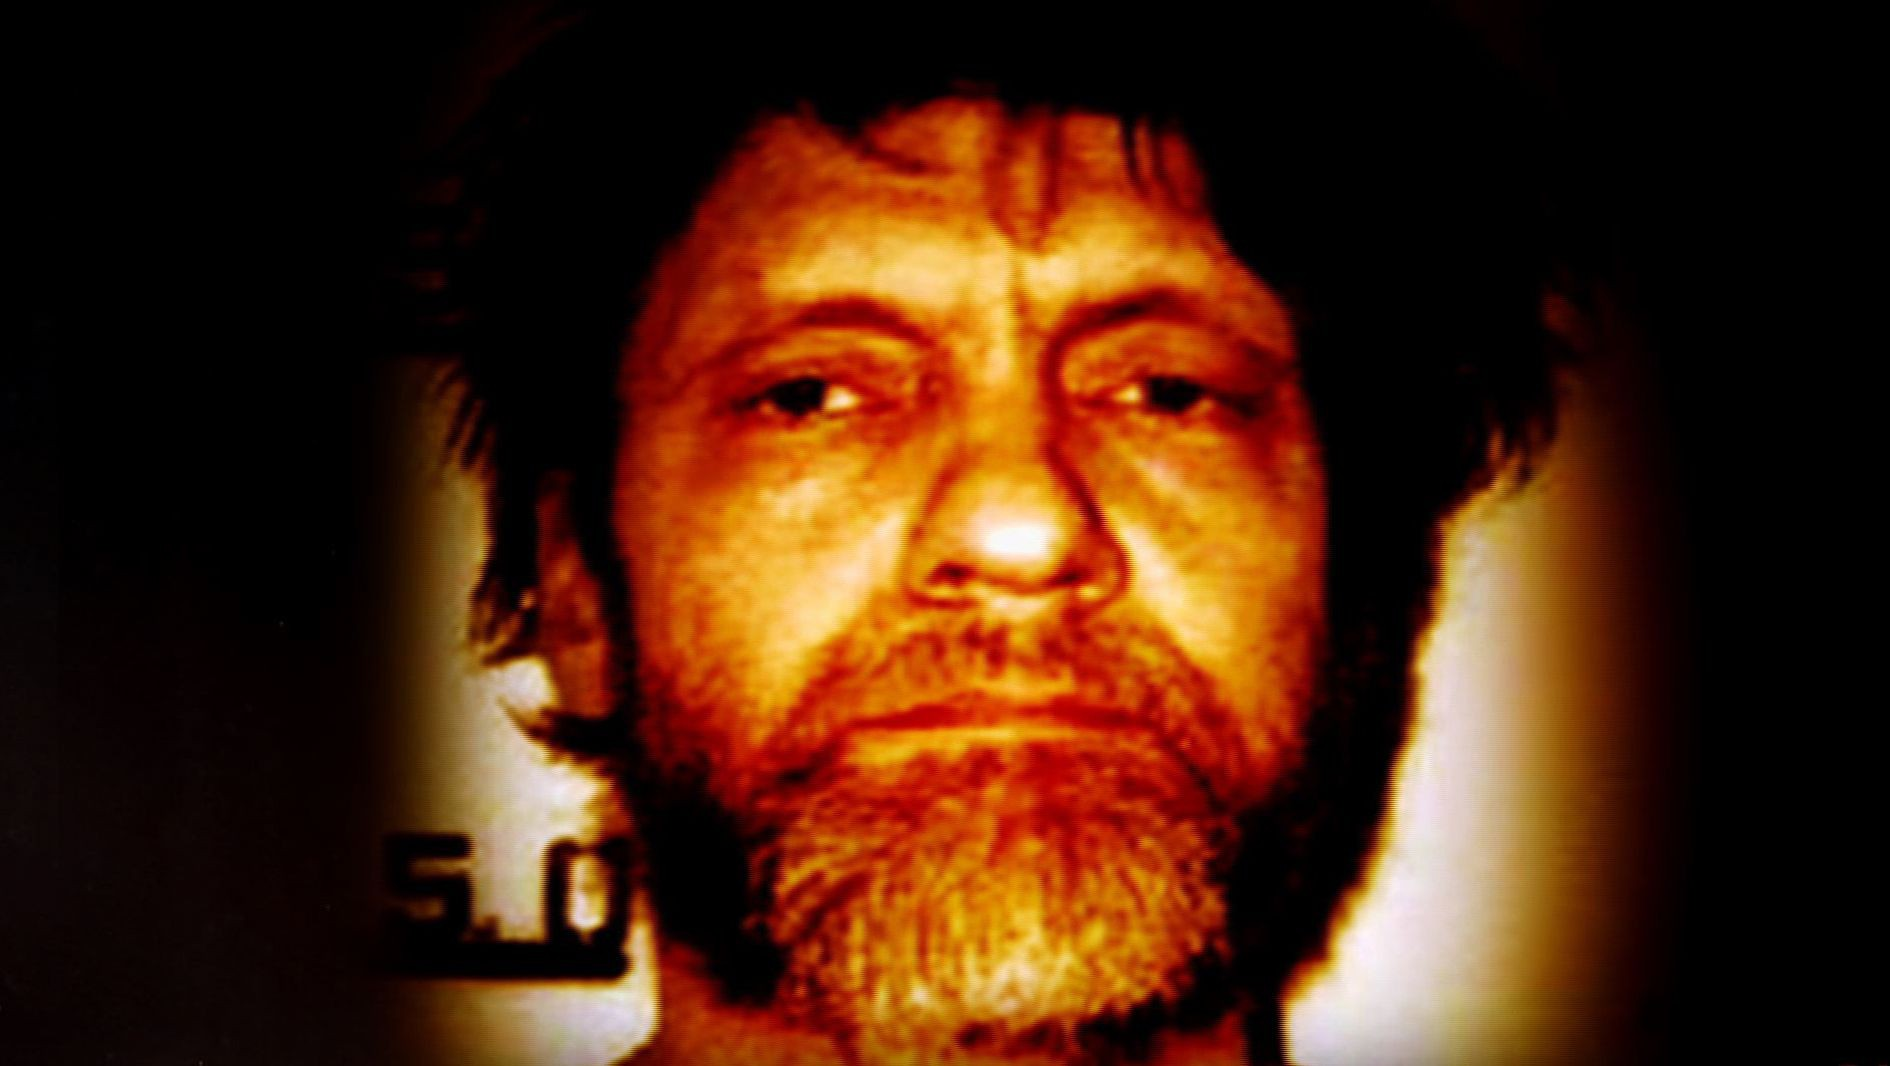 Crimes of the Century: Der Unabomber